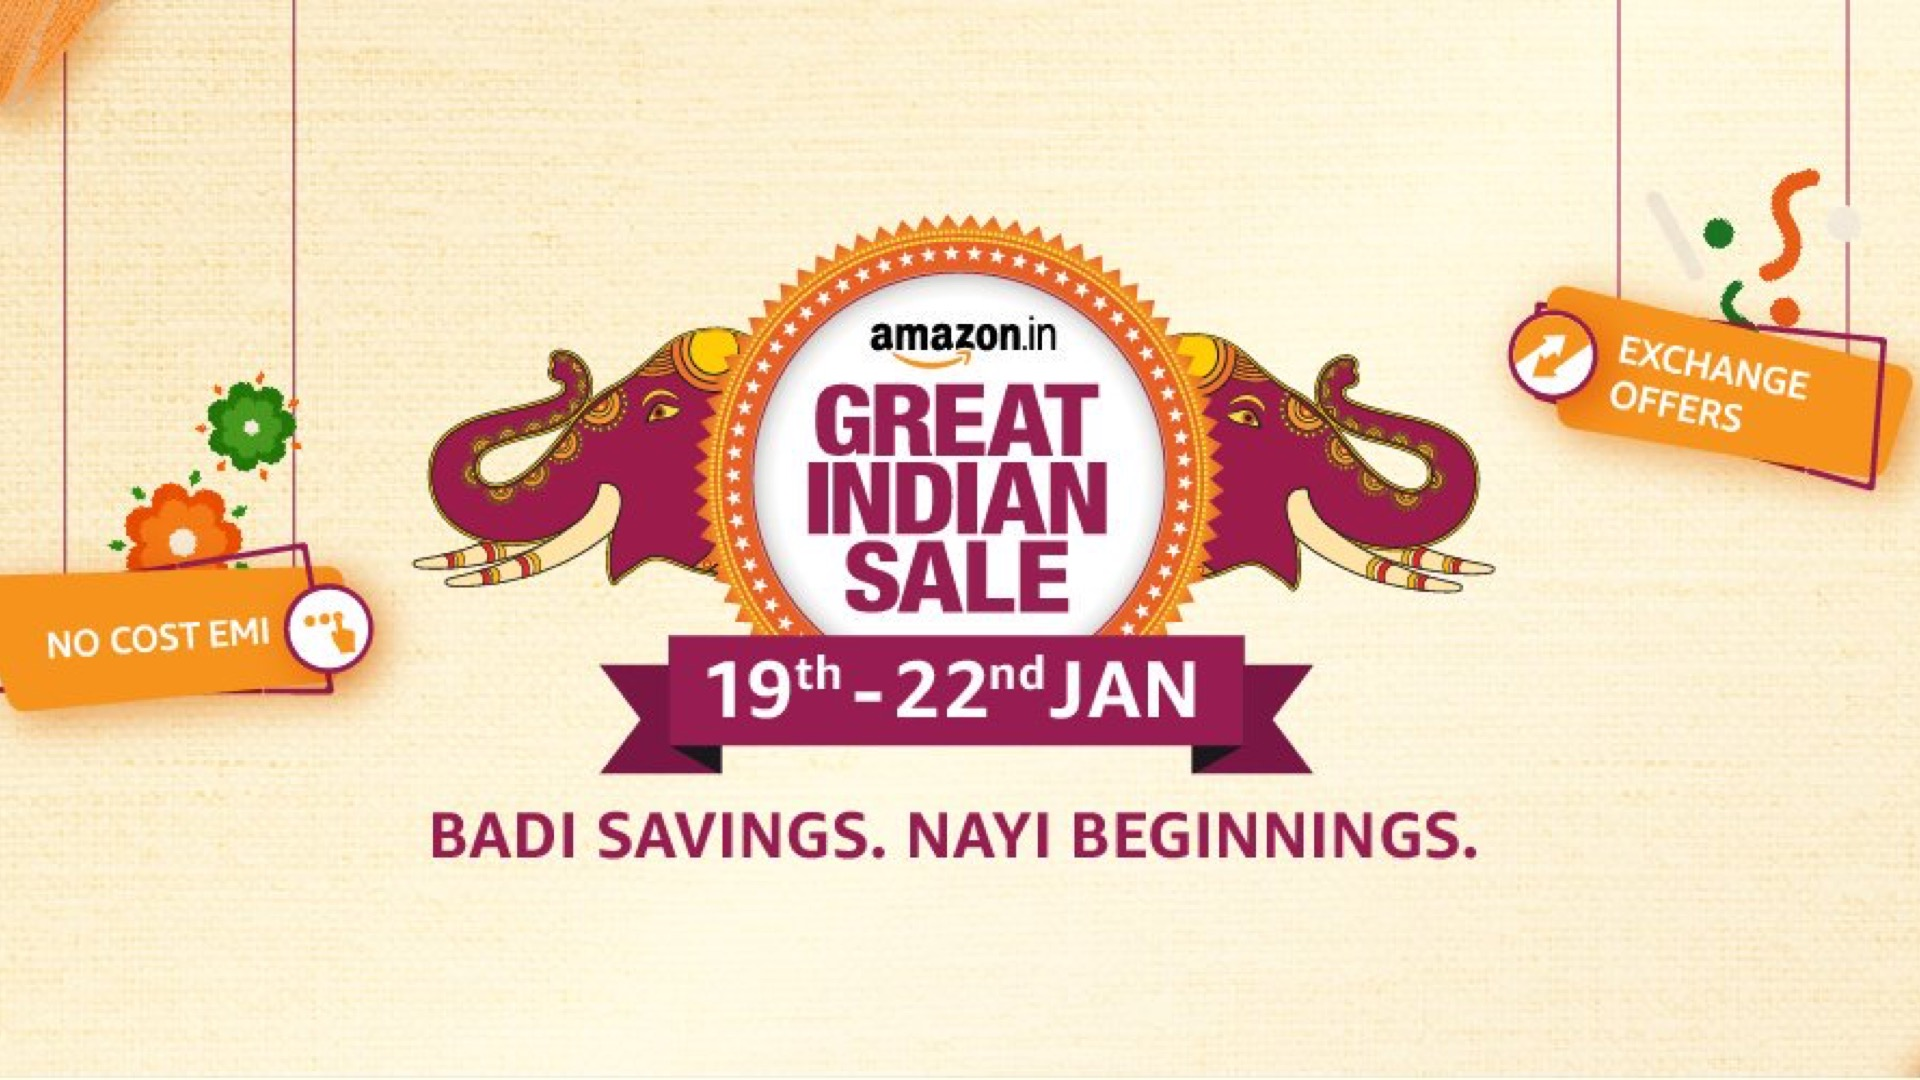 amazon-great-indian-sale-2020-is-live:-here-are-the-best-deals-and-offers